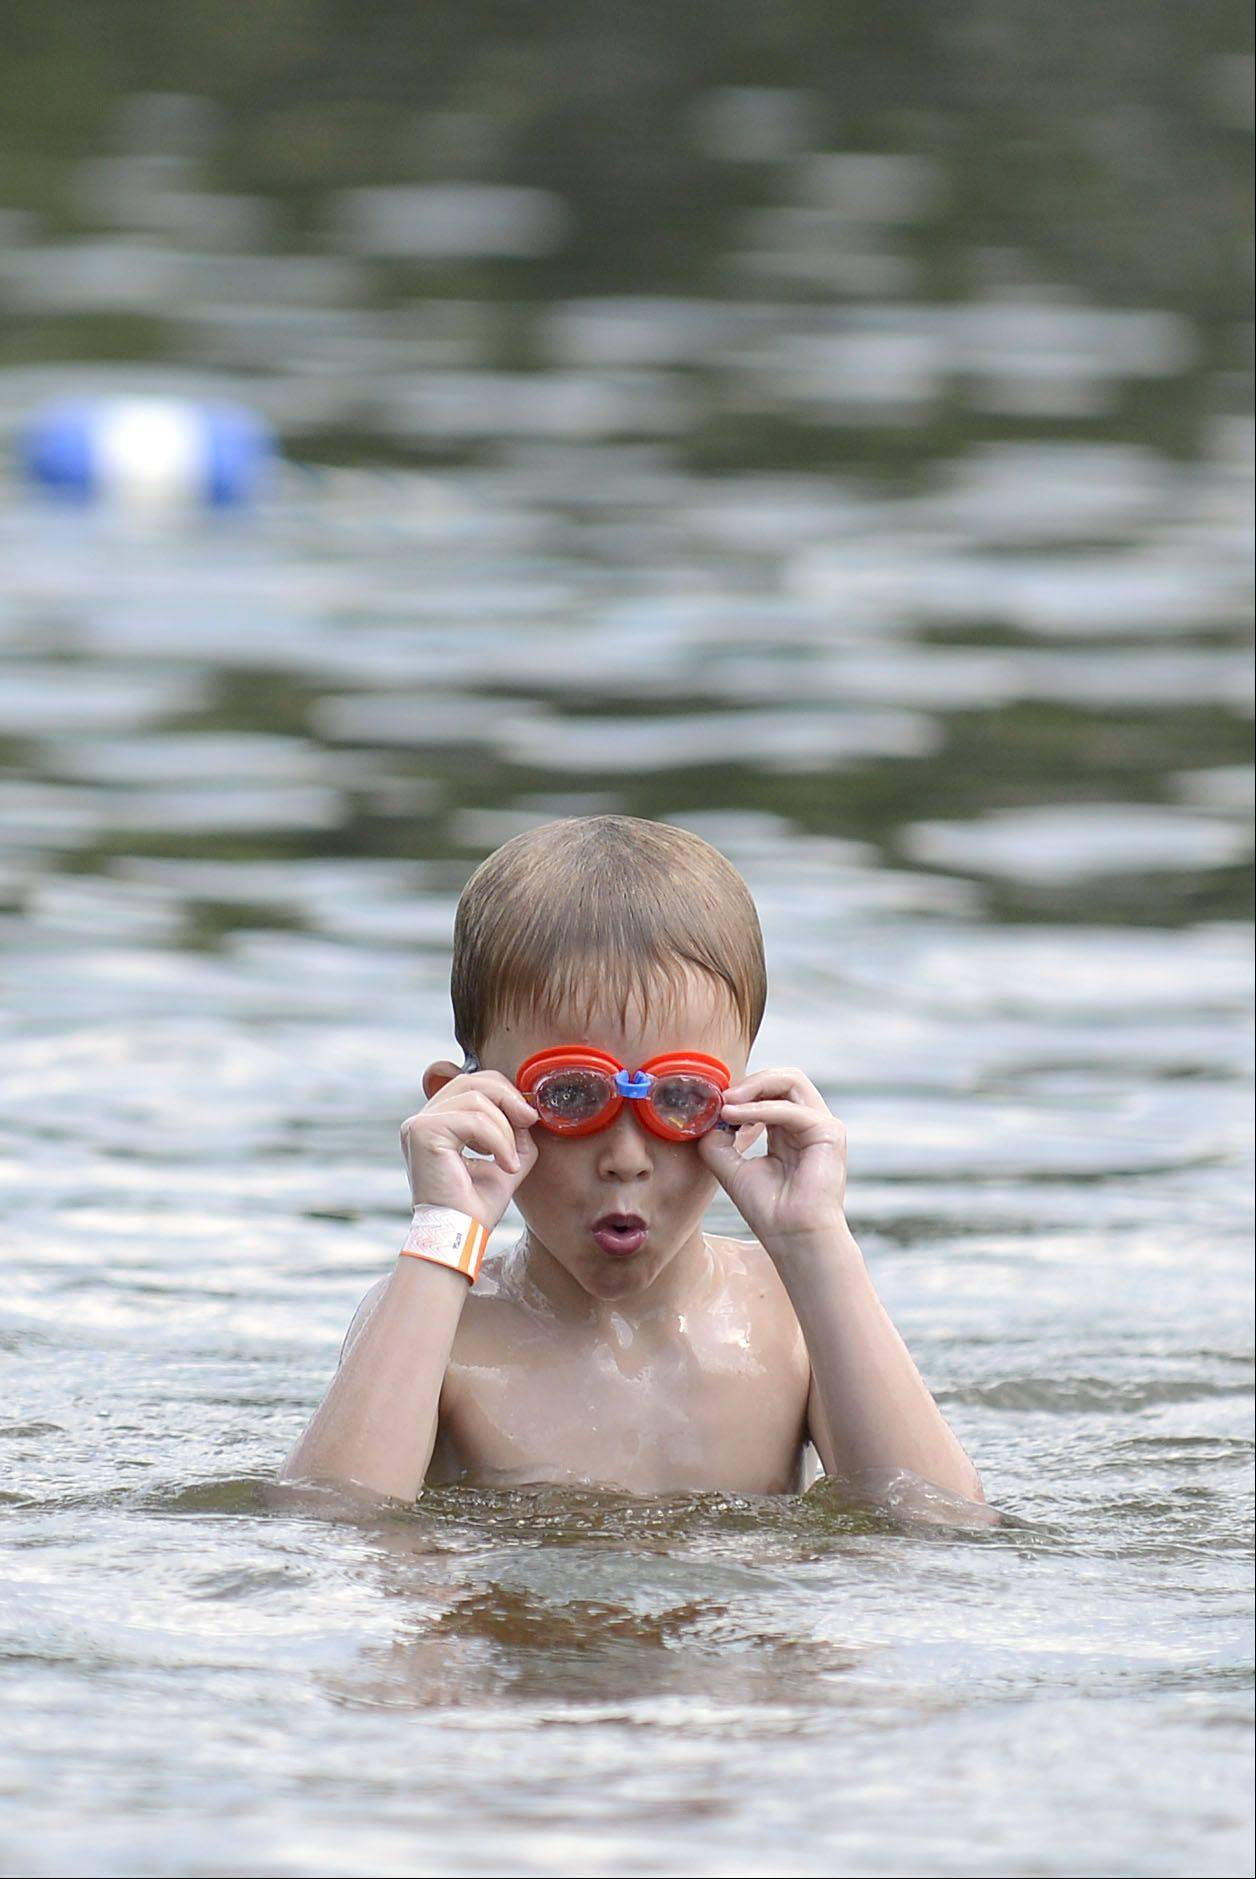 Rory Rezendes, 5, of Algonquin surfaces to adjust his googles while investigating the lake bottom at Woods Creek Lake in Lake in the Hills on Thursday. He visited the lake for the first time with his mother, Stacey, and siblings Elliot, 4, and Marshal, 1.